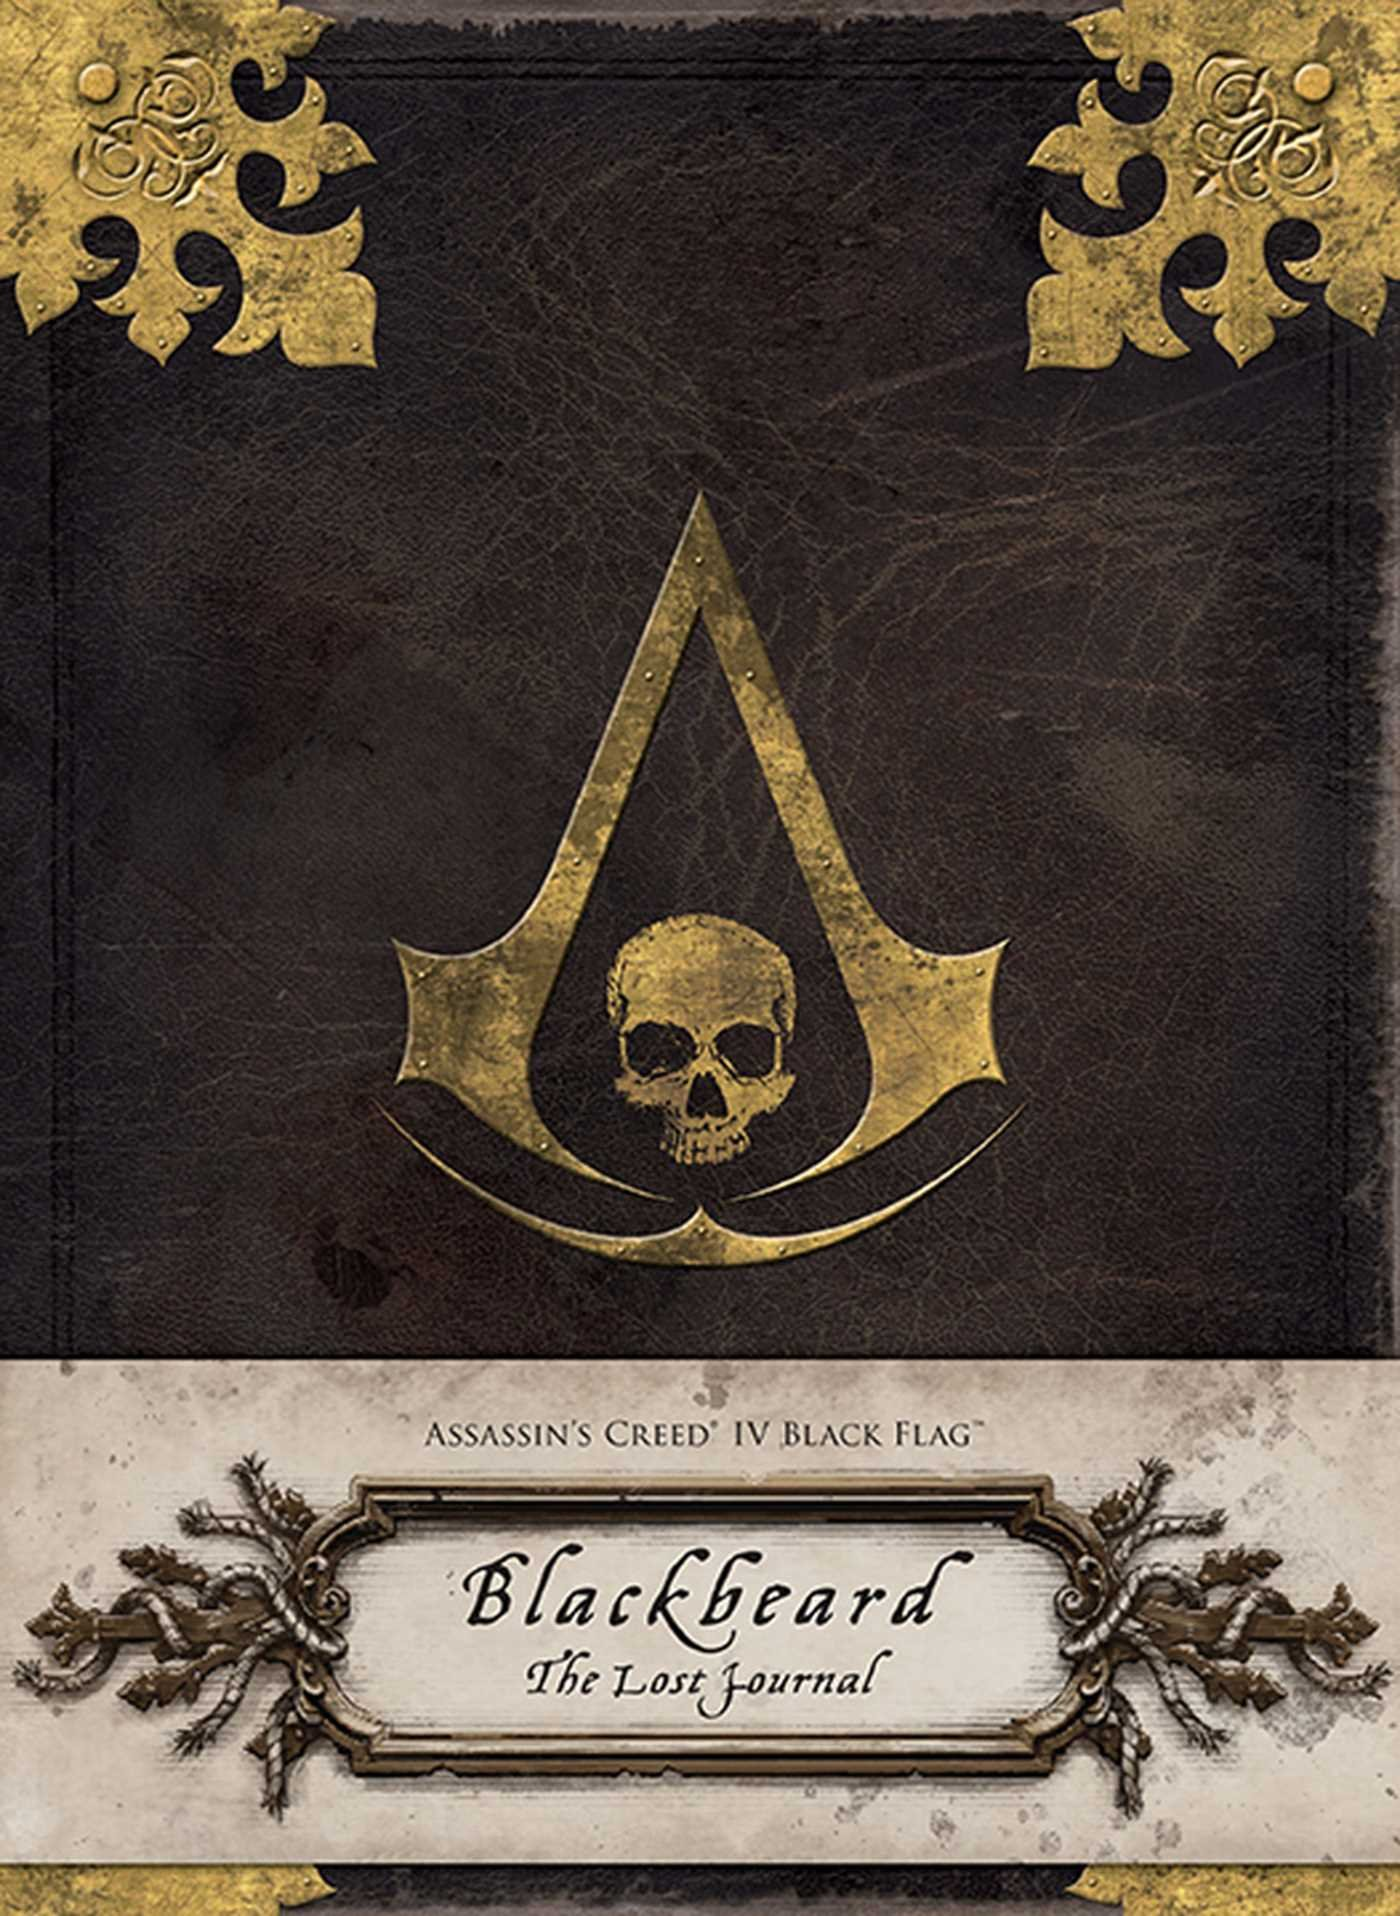 Amazon Com Assassin S Creed Iv Black Flag Blackbeard The Lost